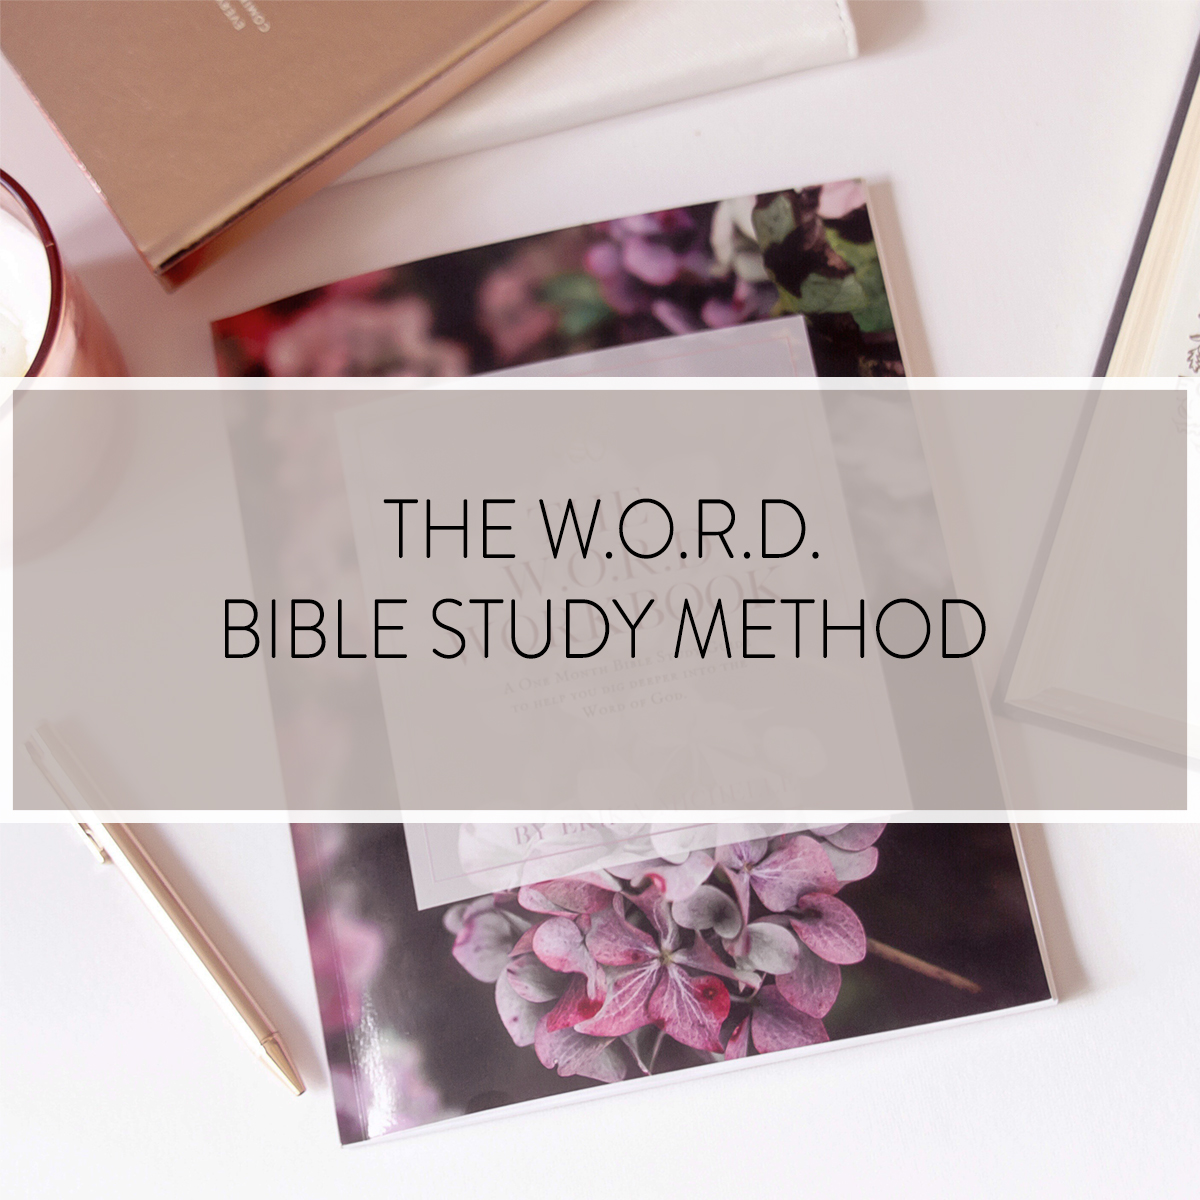 The W.O.R.D. Bible Study method is a simple four step approach two help you dig deeper into the Word of God.